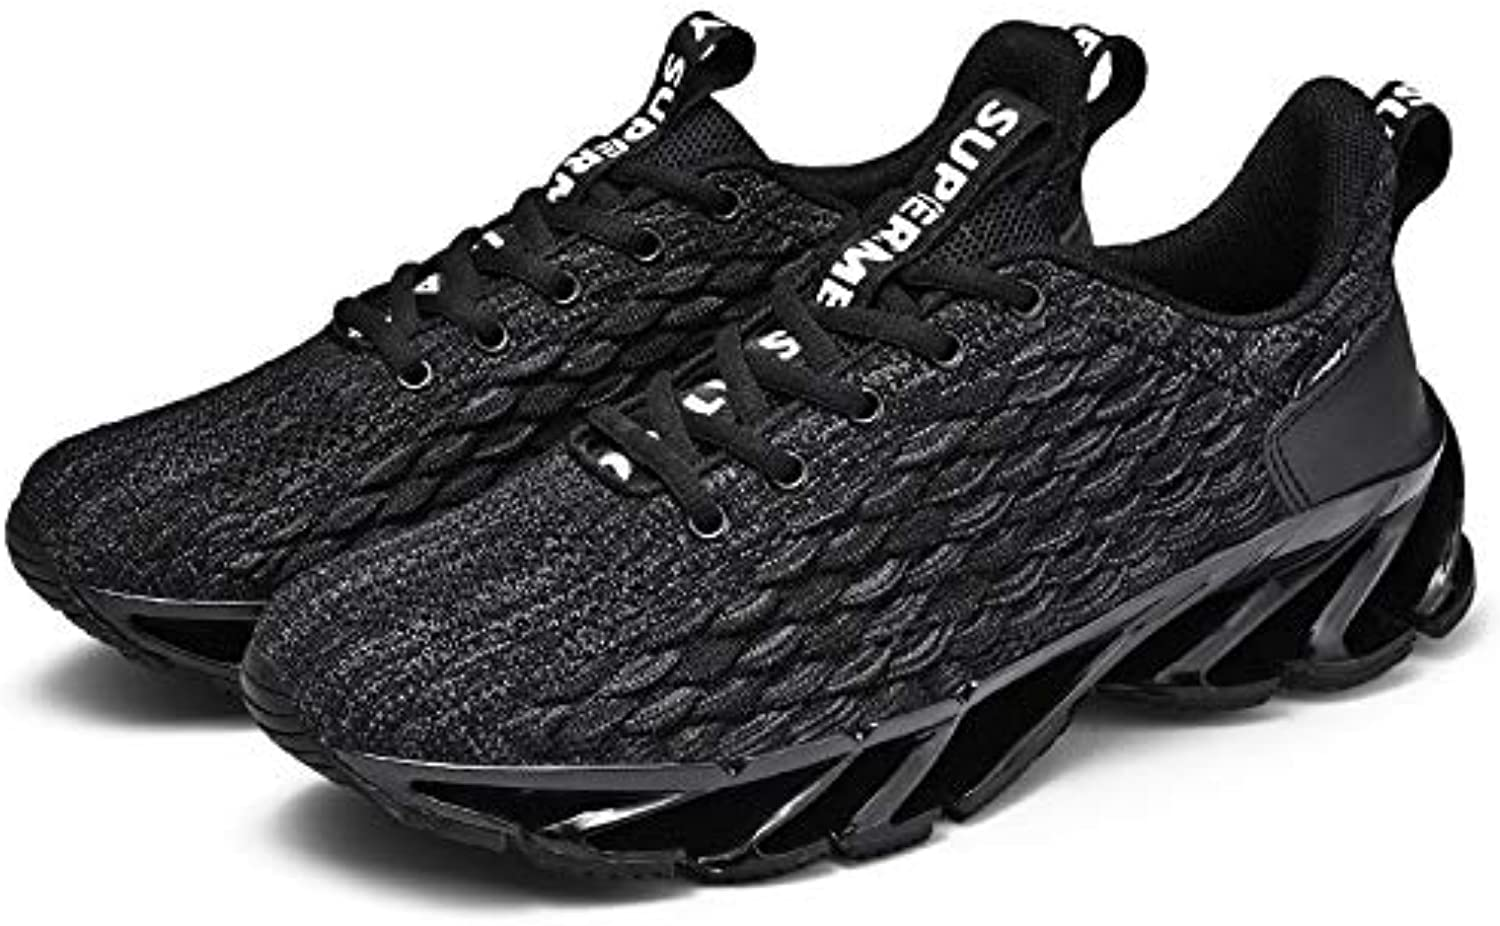 JLCP Men's Casual Trainers running shoes, Fish scale Mesh Blade Athletic Sneakers Breathable Lightweight Non-slip Gym Walking Outdoor Sports shoes,Black,39